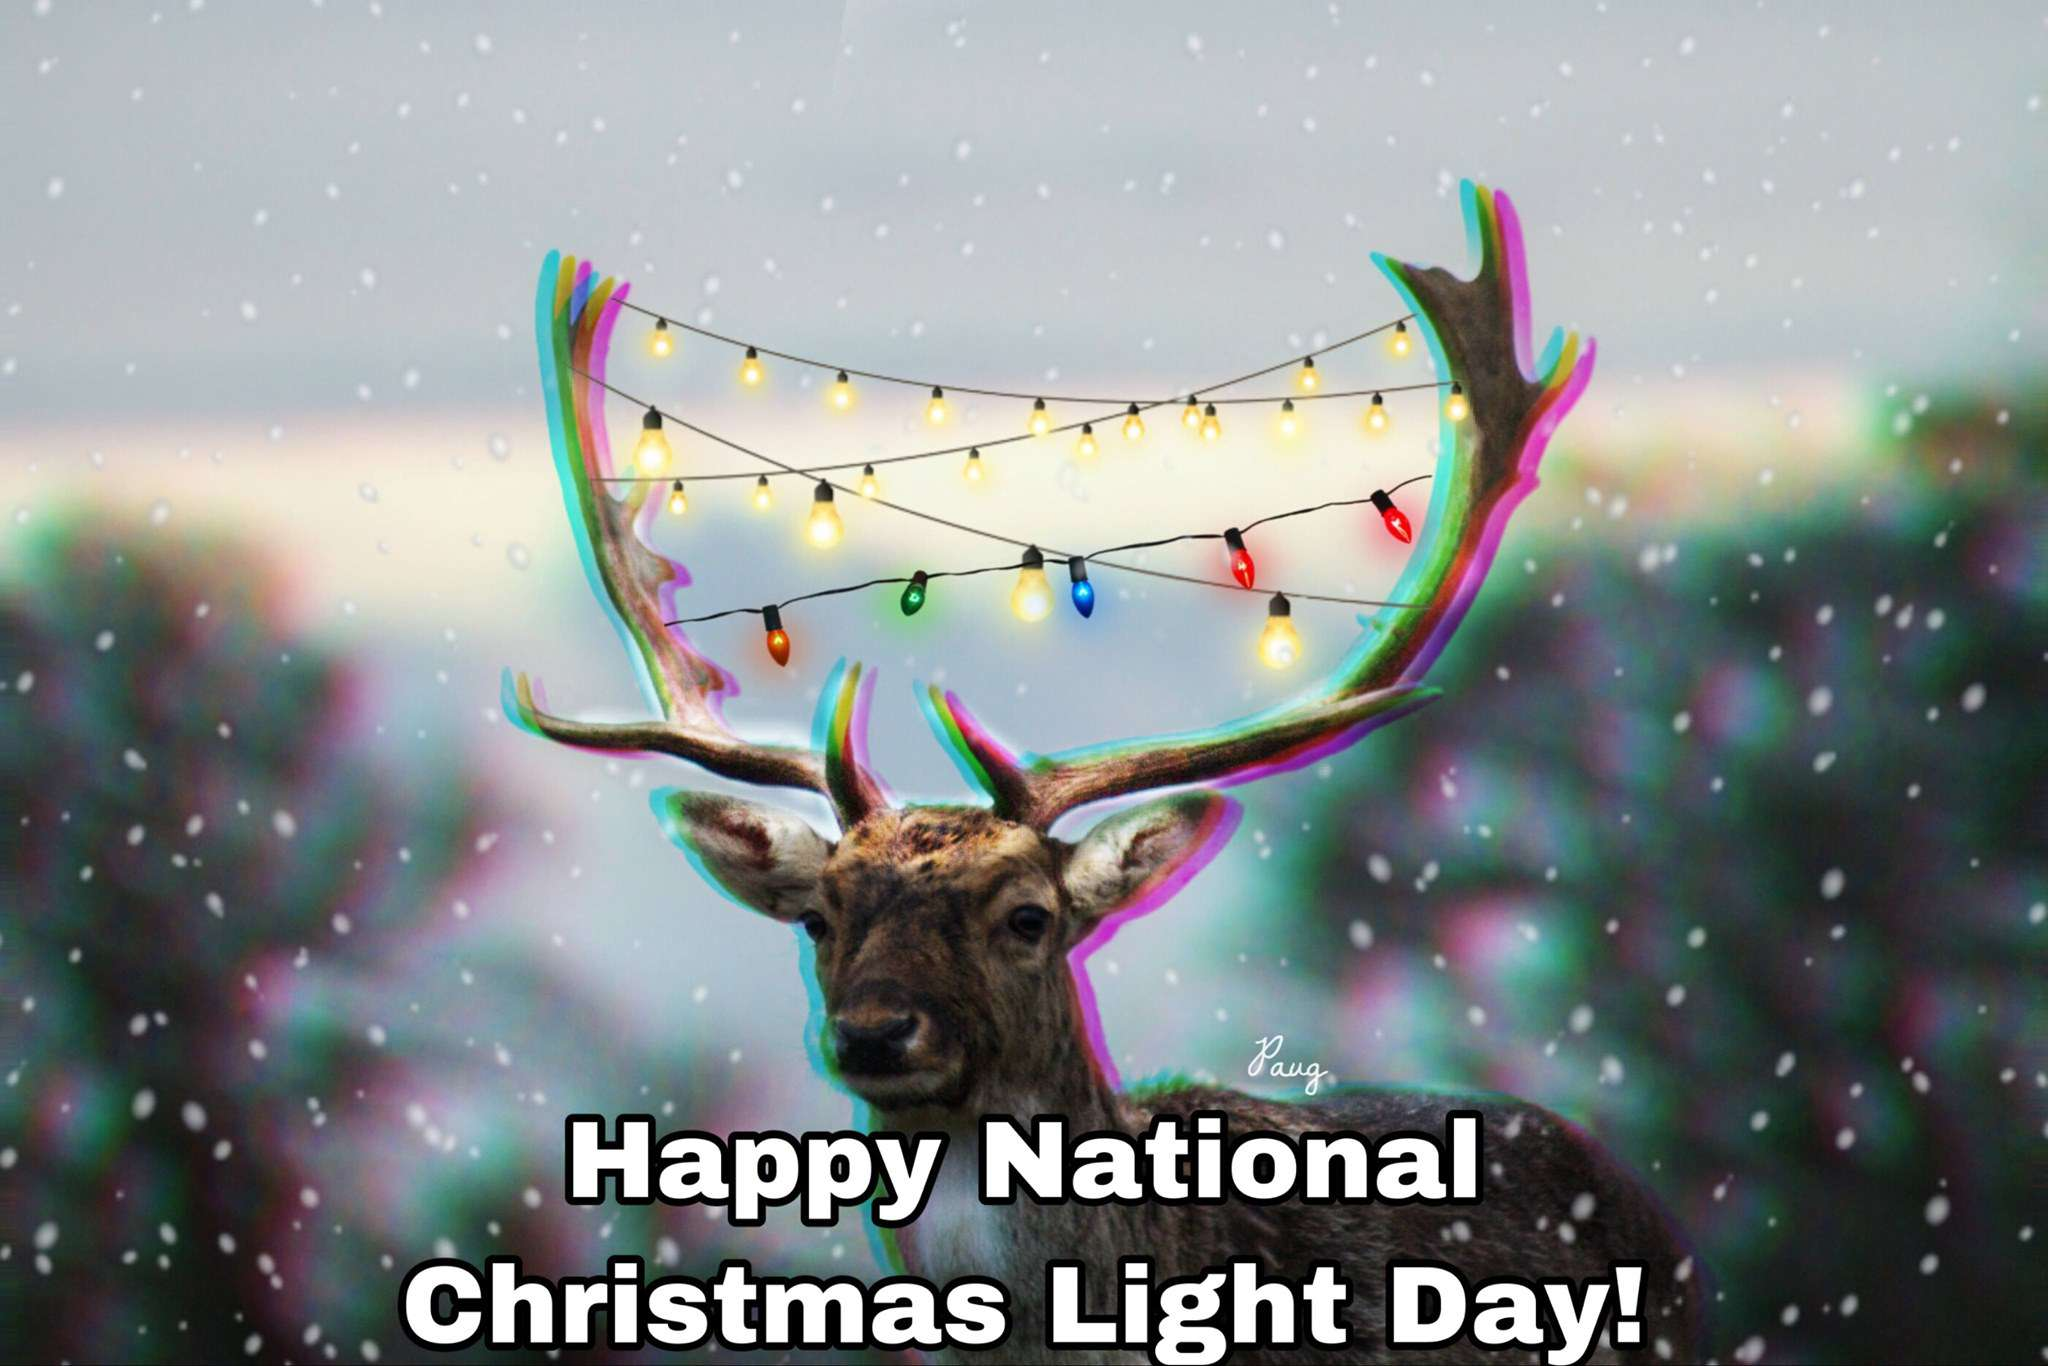 National Christmas Lights Day Wishes Images download